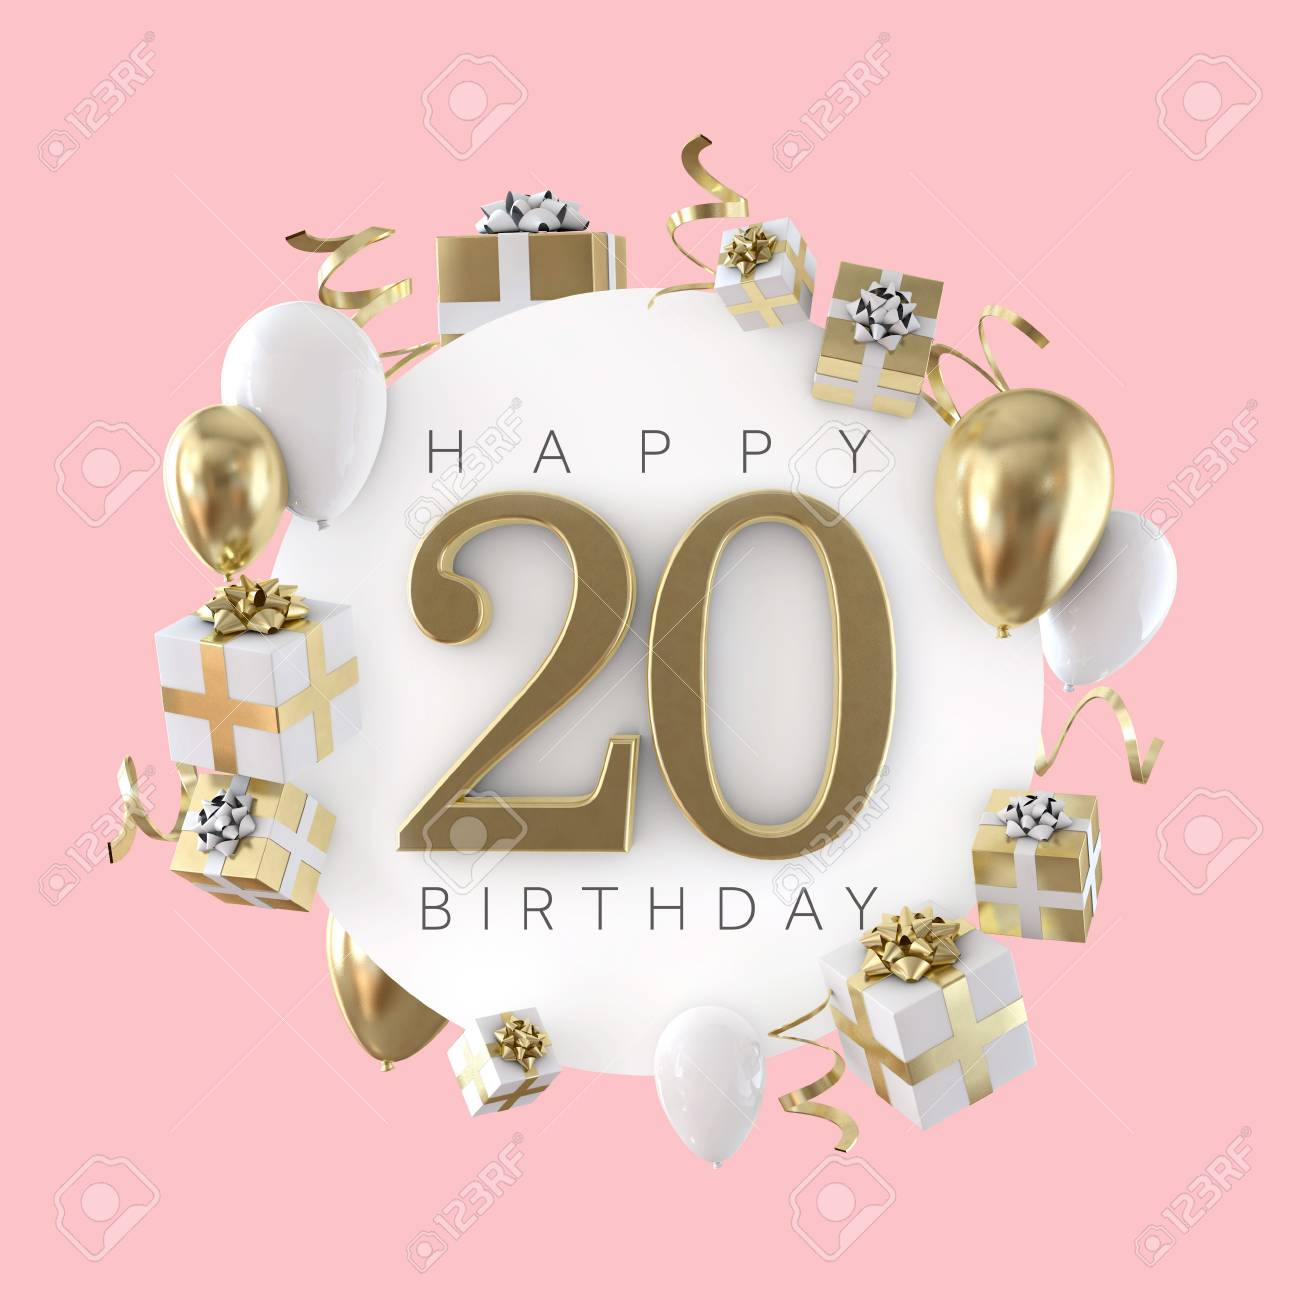 Happy 20th Birthday Party Composition With Balloons And Presents 3D Render Stock Photo